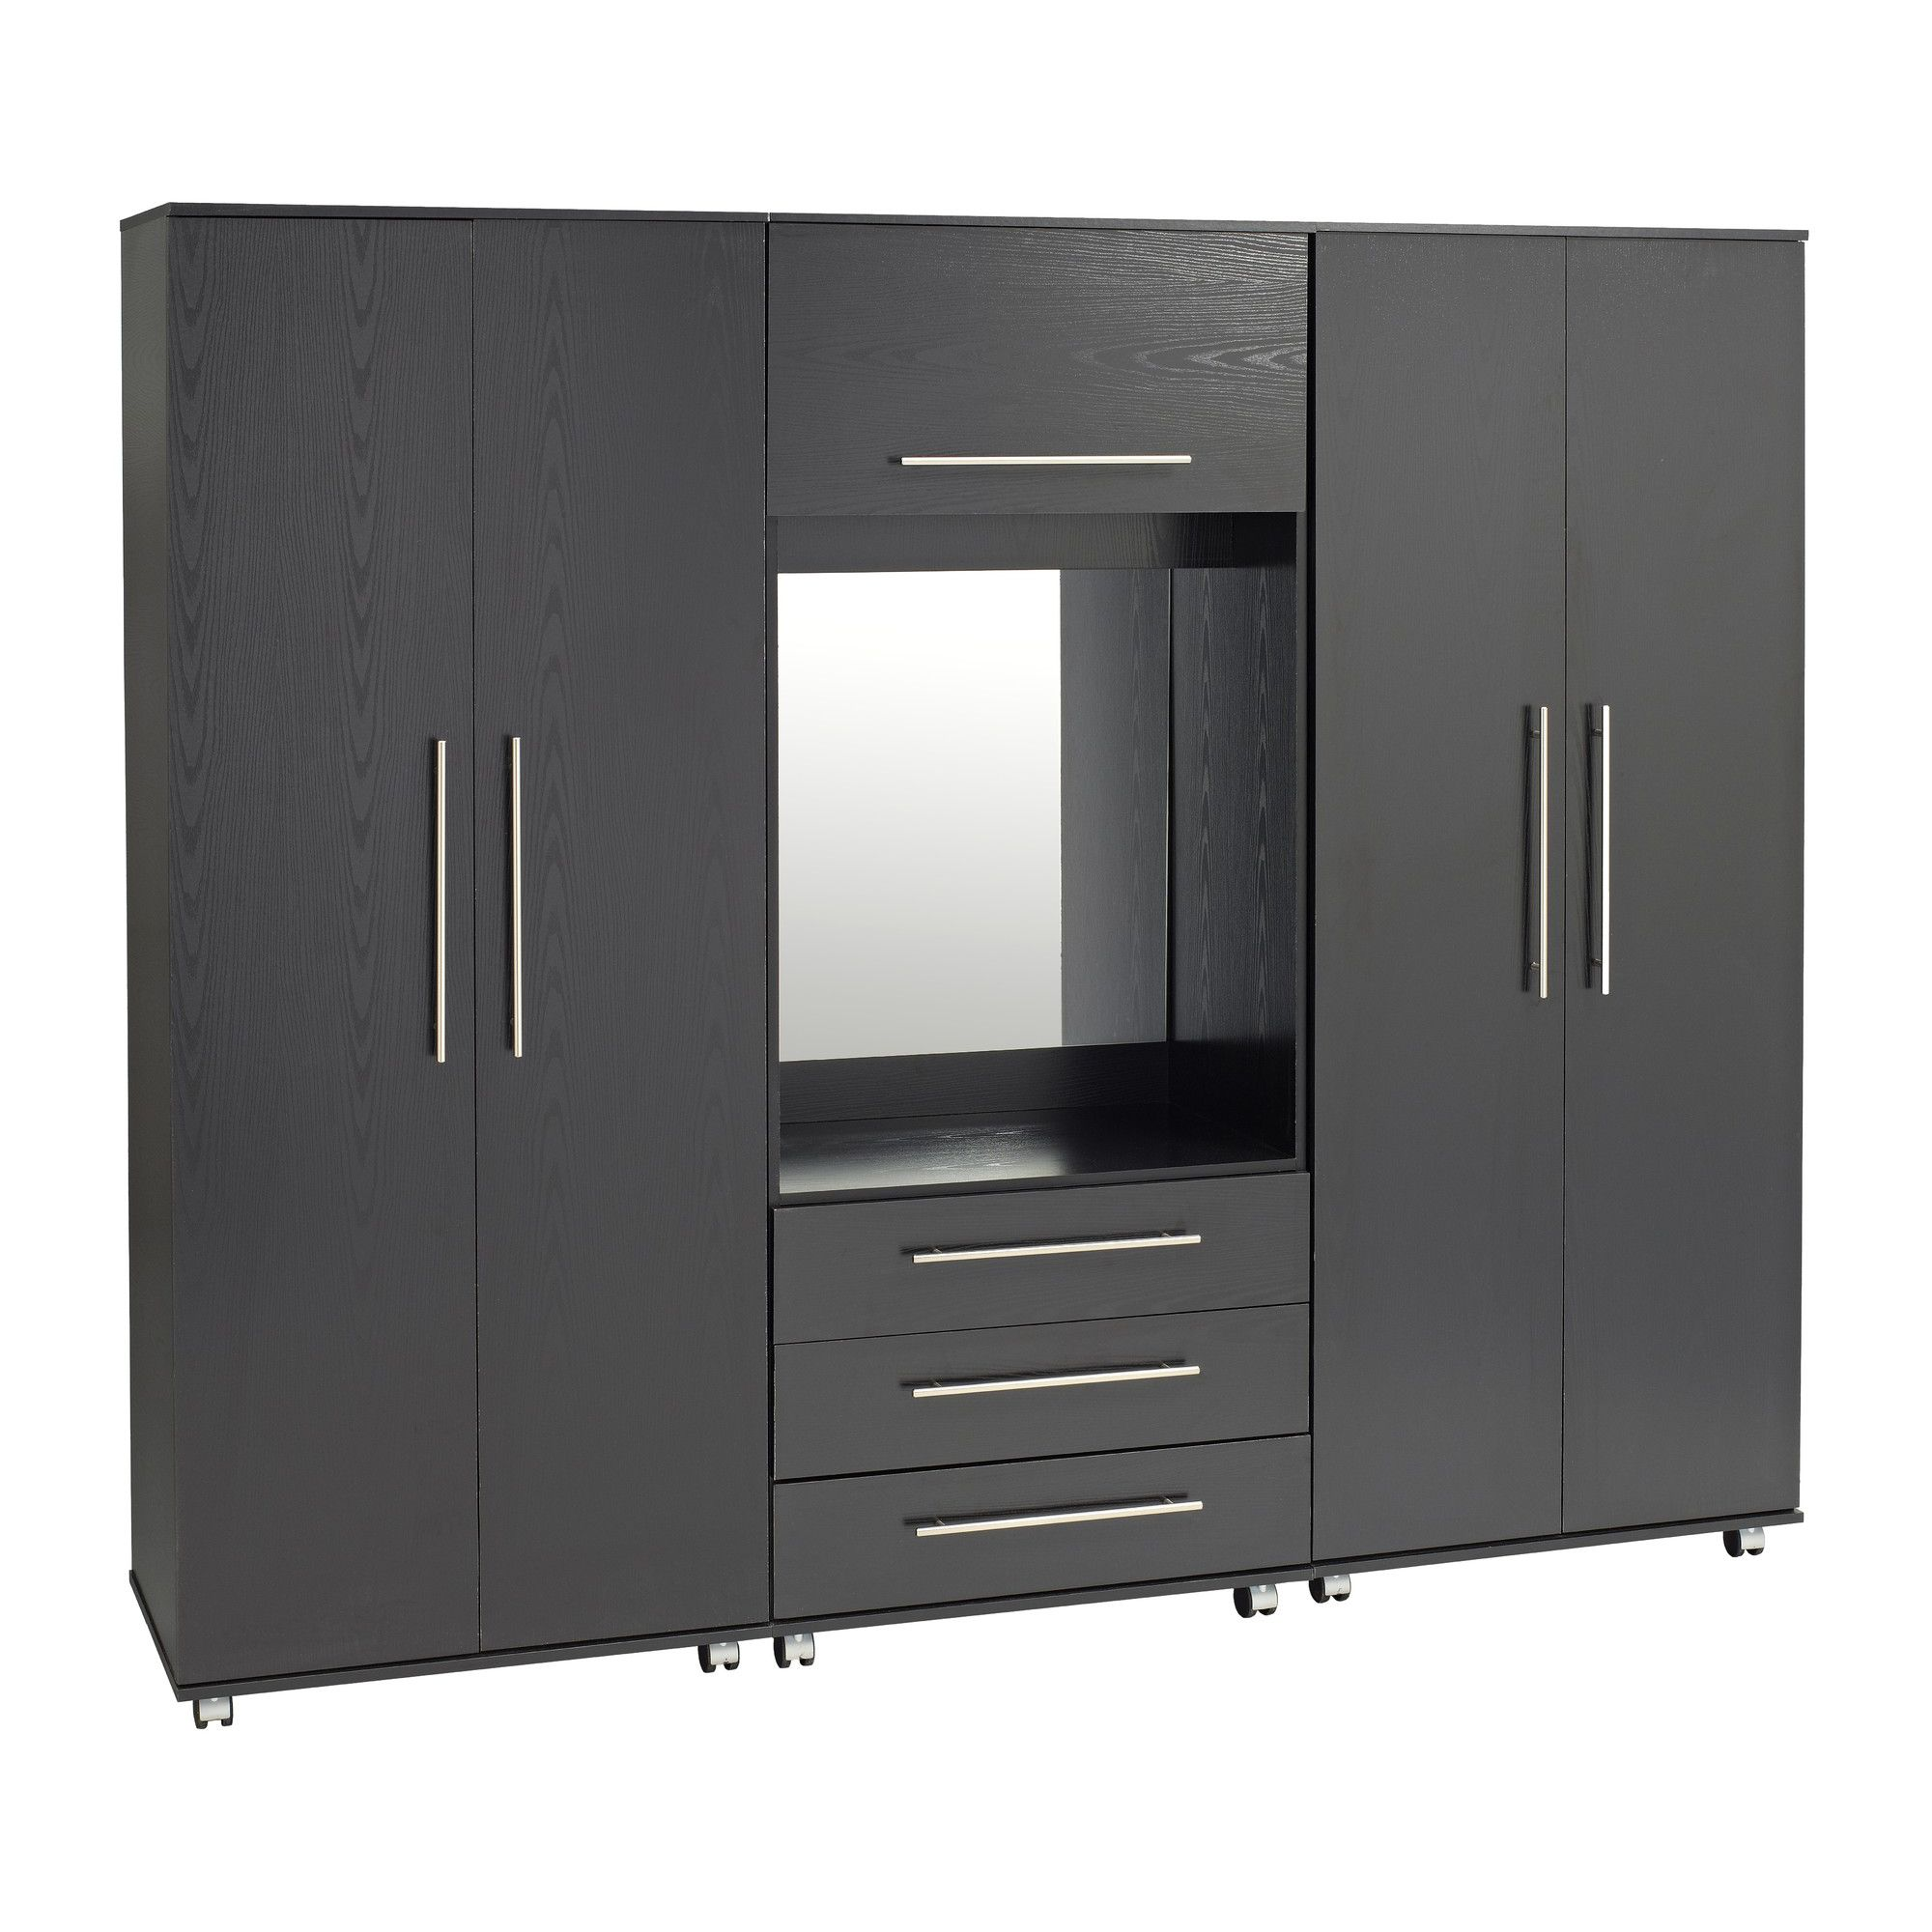 Ideal Furniture Bobby Fitment Wardrobe - Oak at Tesco Direct